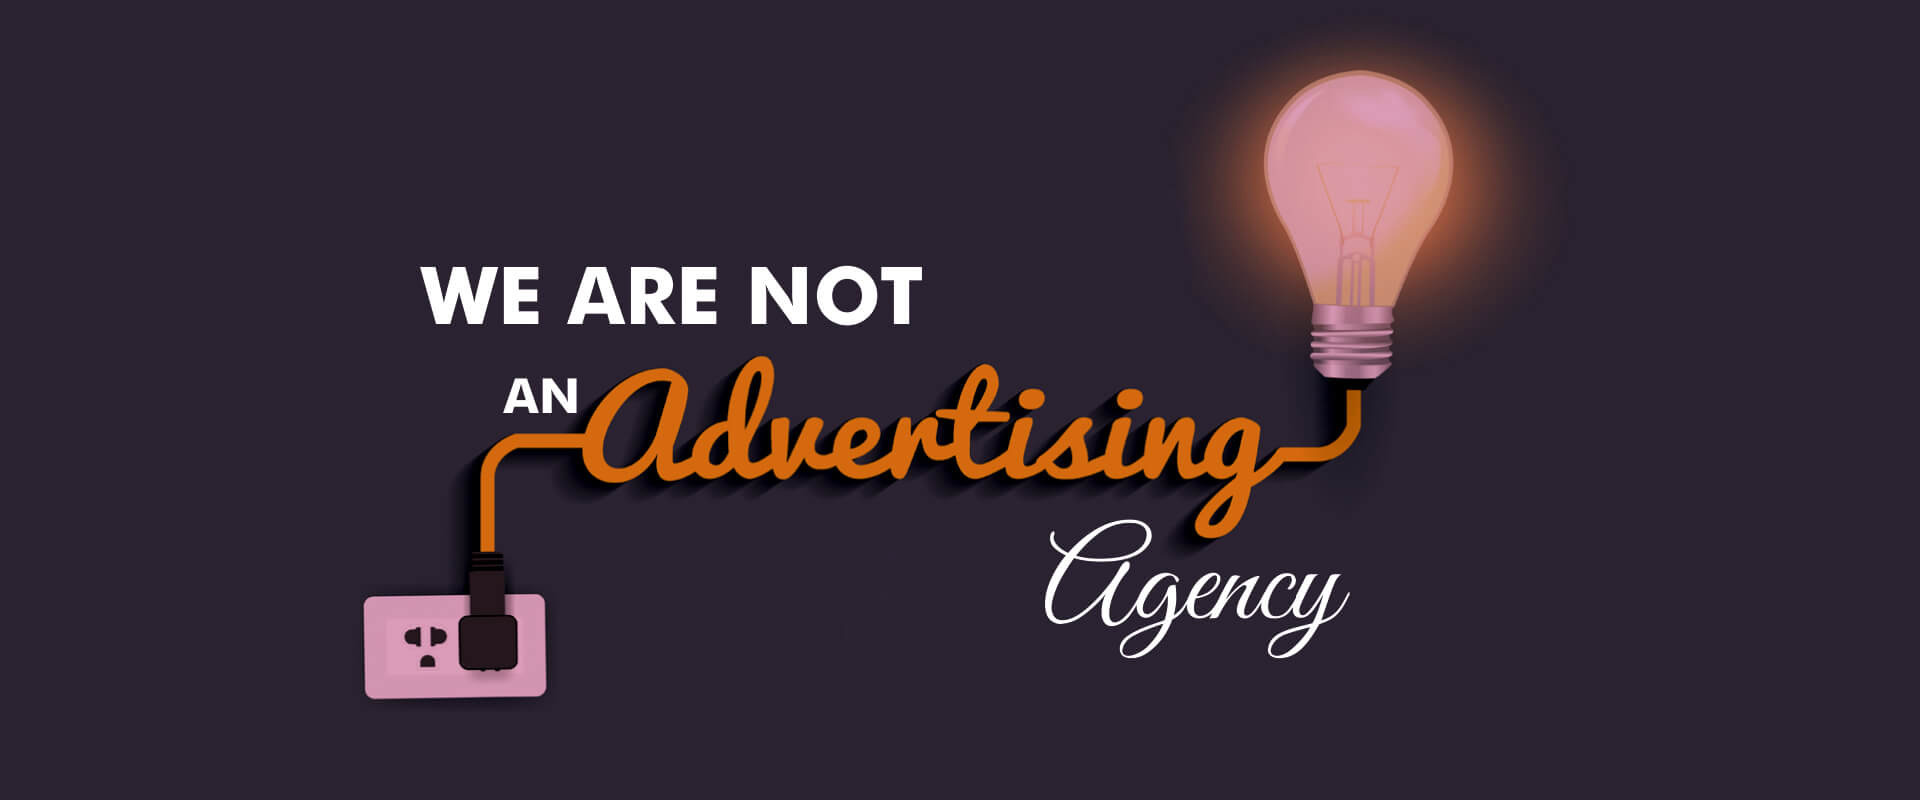 advertisment agencies